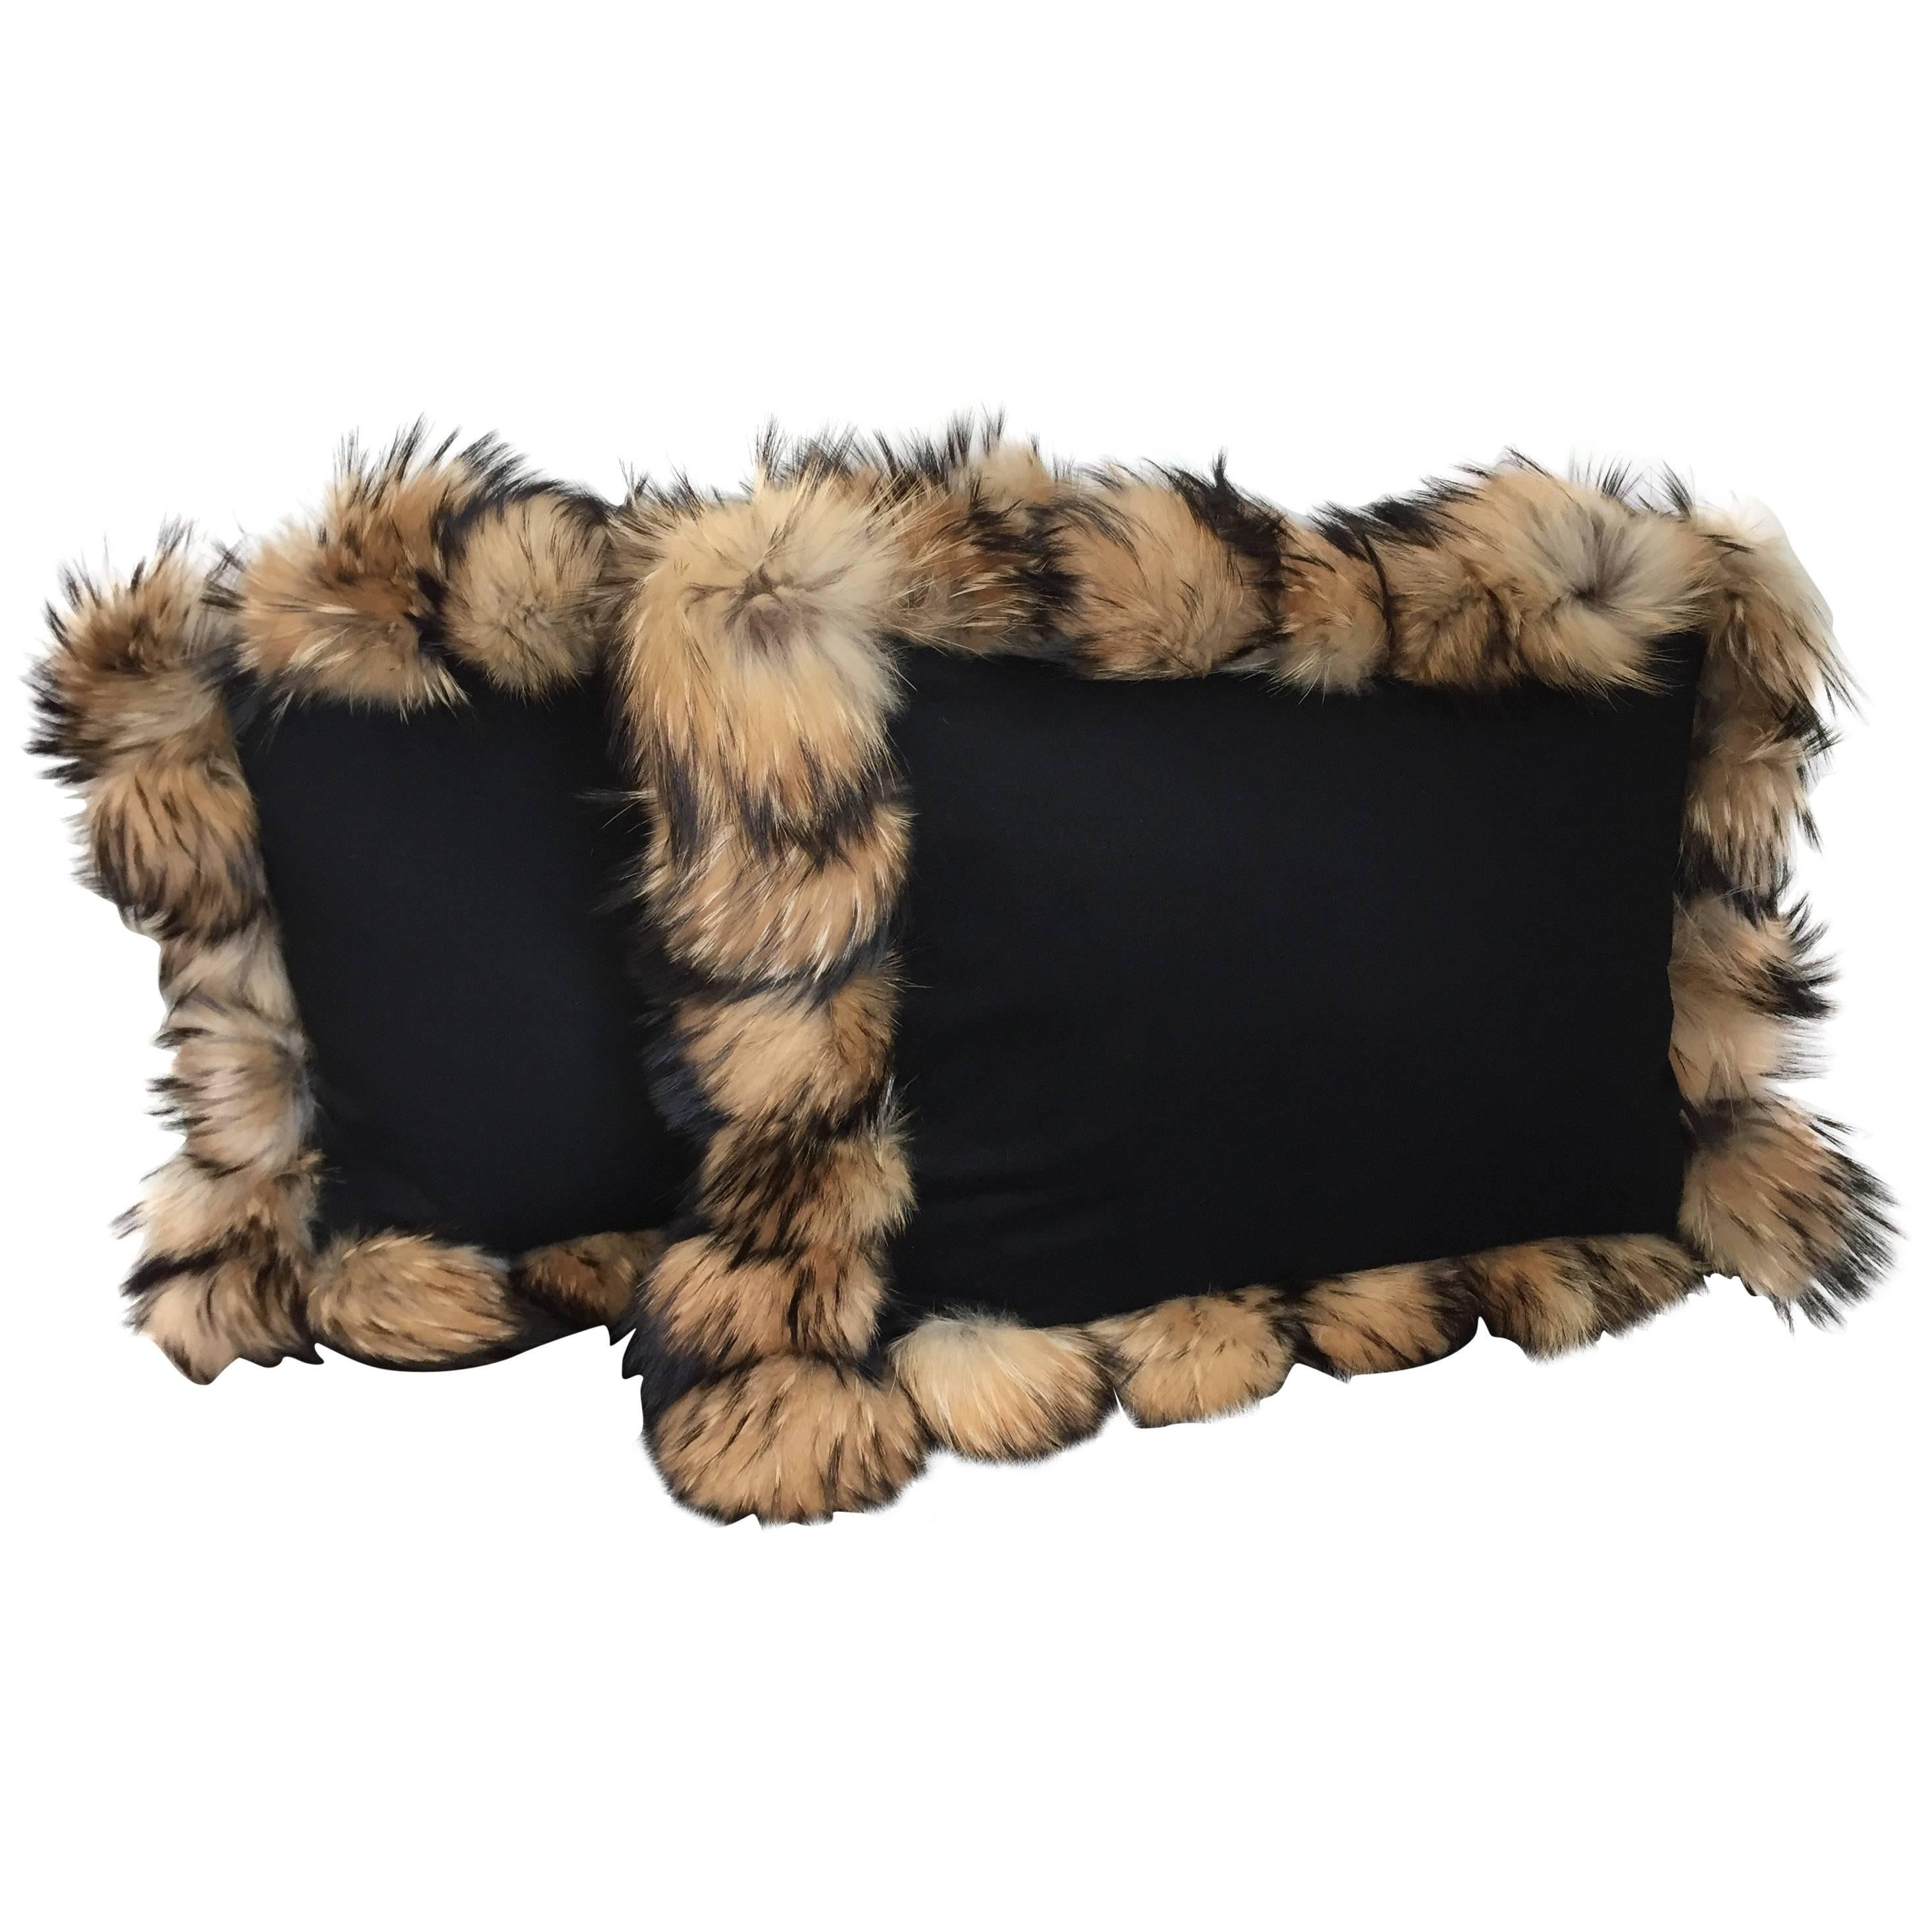 Cashmere Wool Cushions Color Black with Fur Trim Raccoon